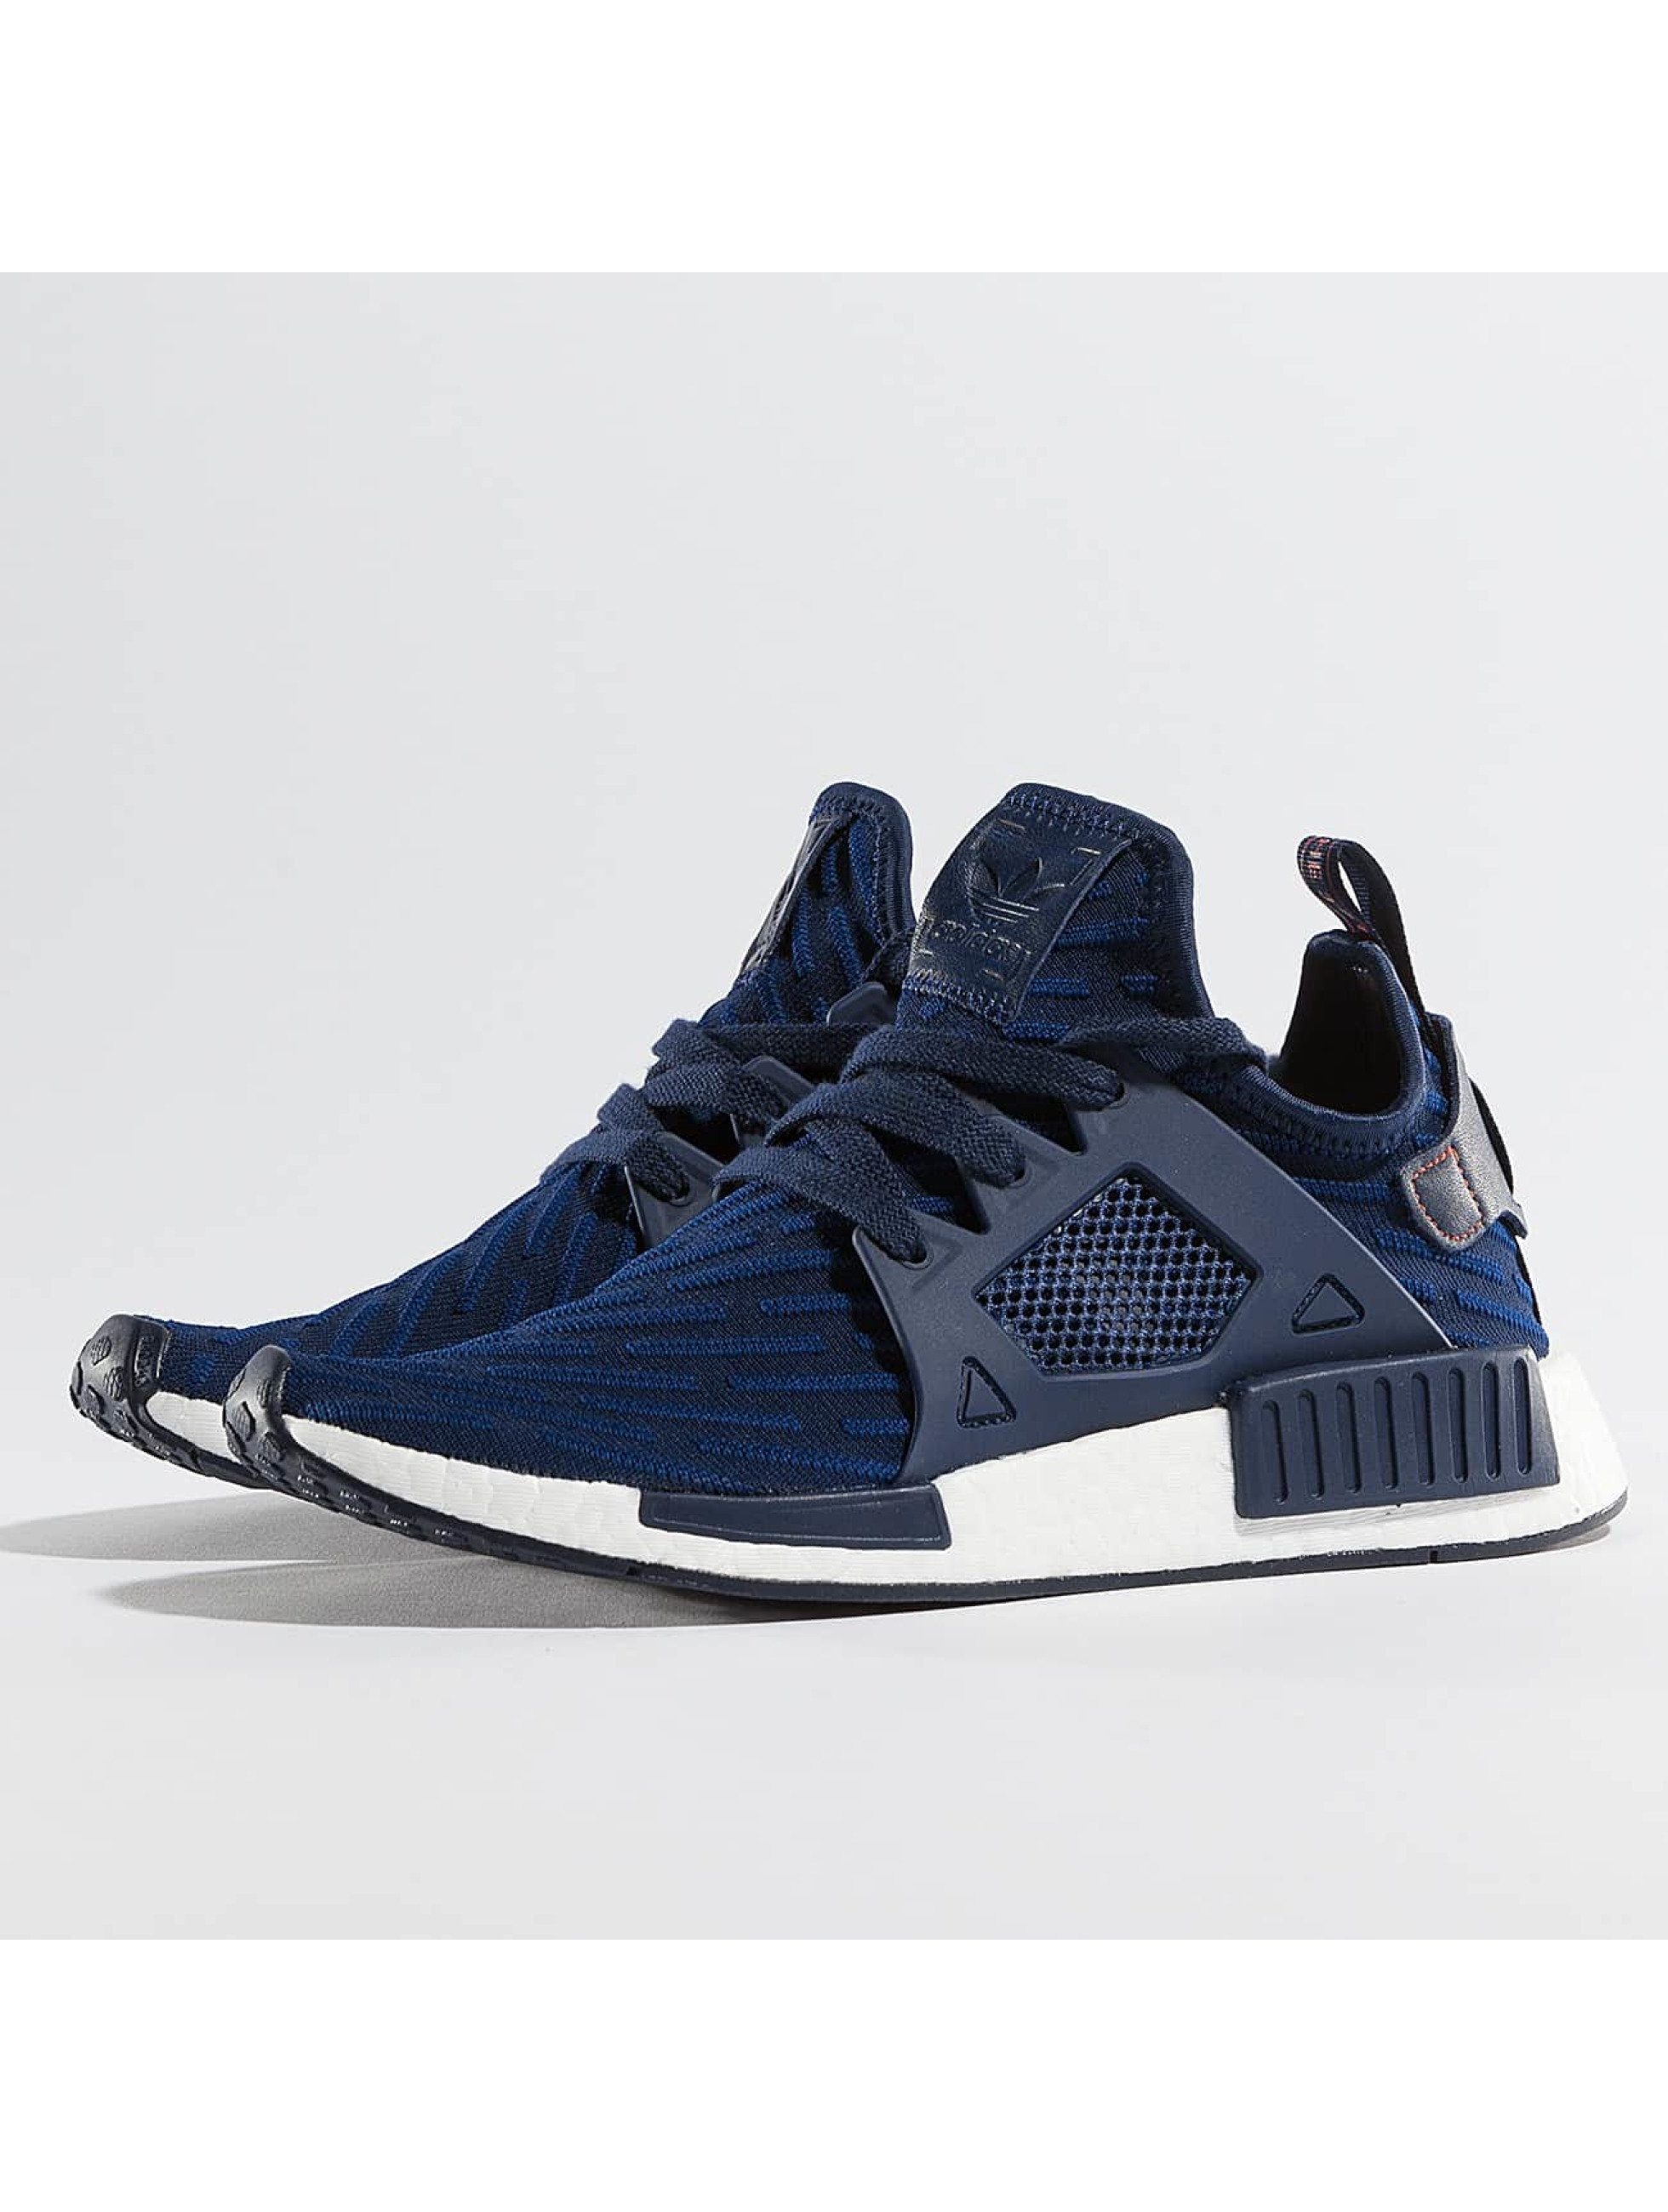 Adidas Nmd Xr Shoes Navy